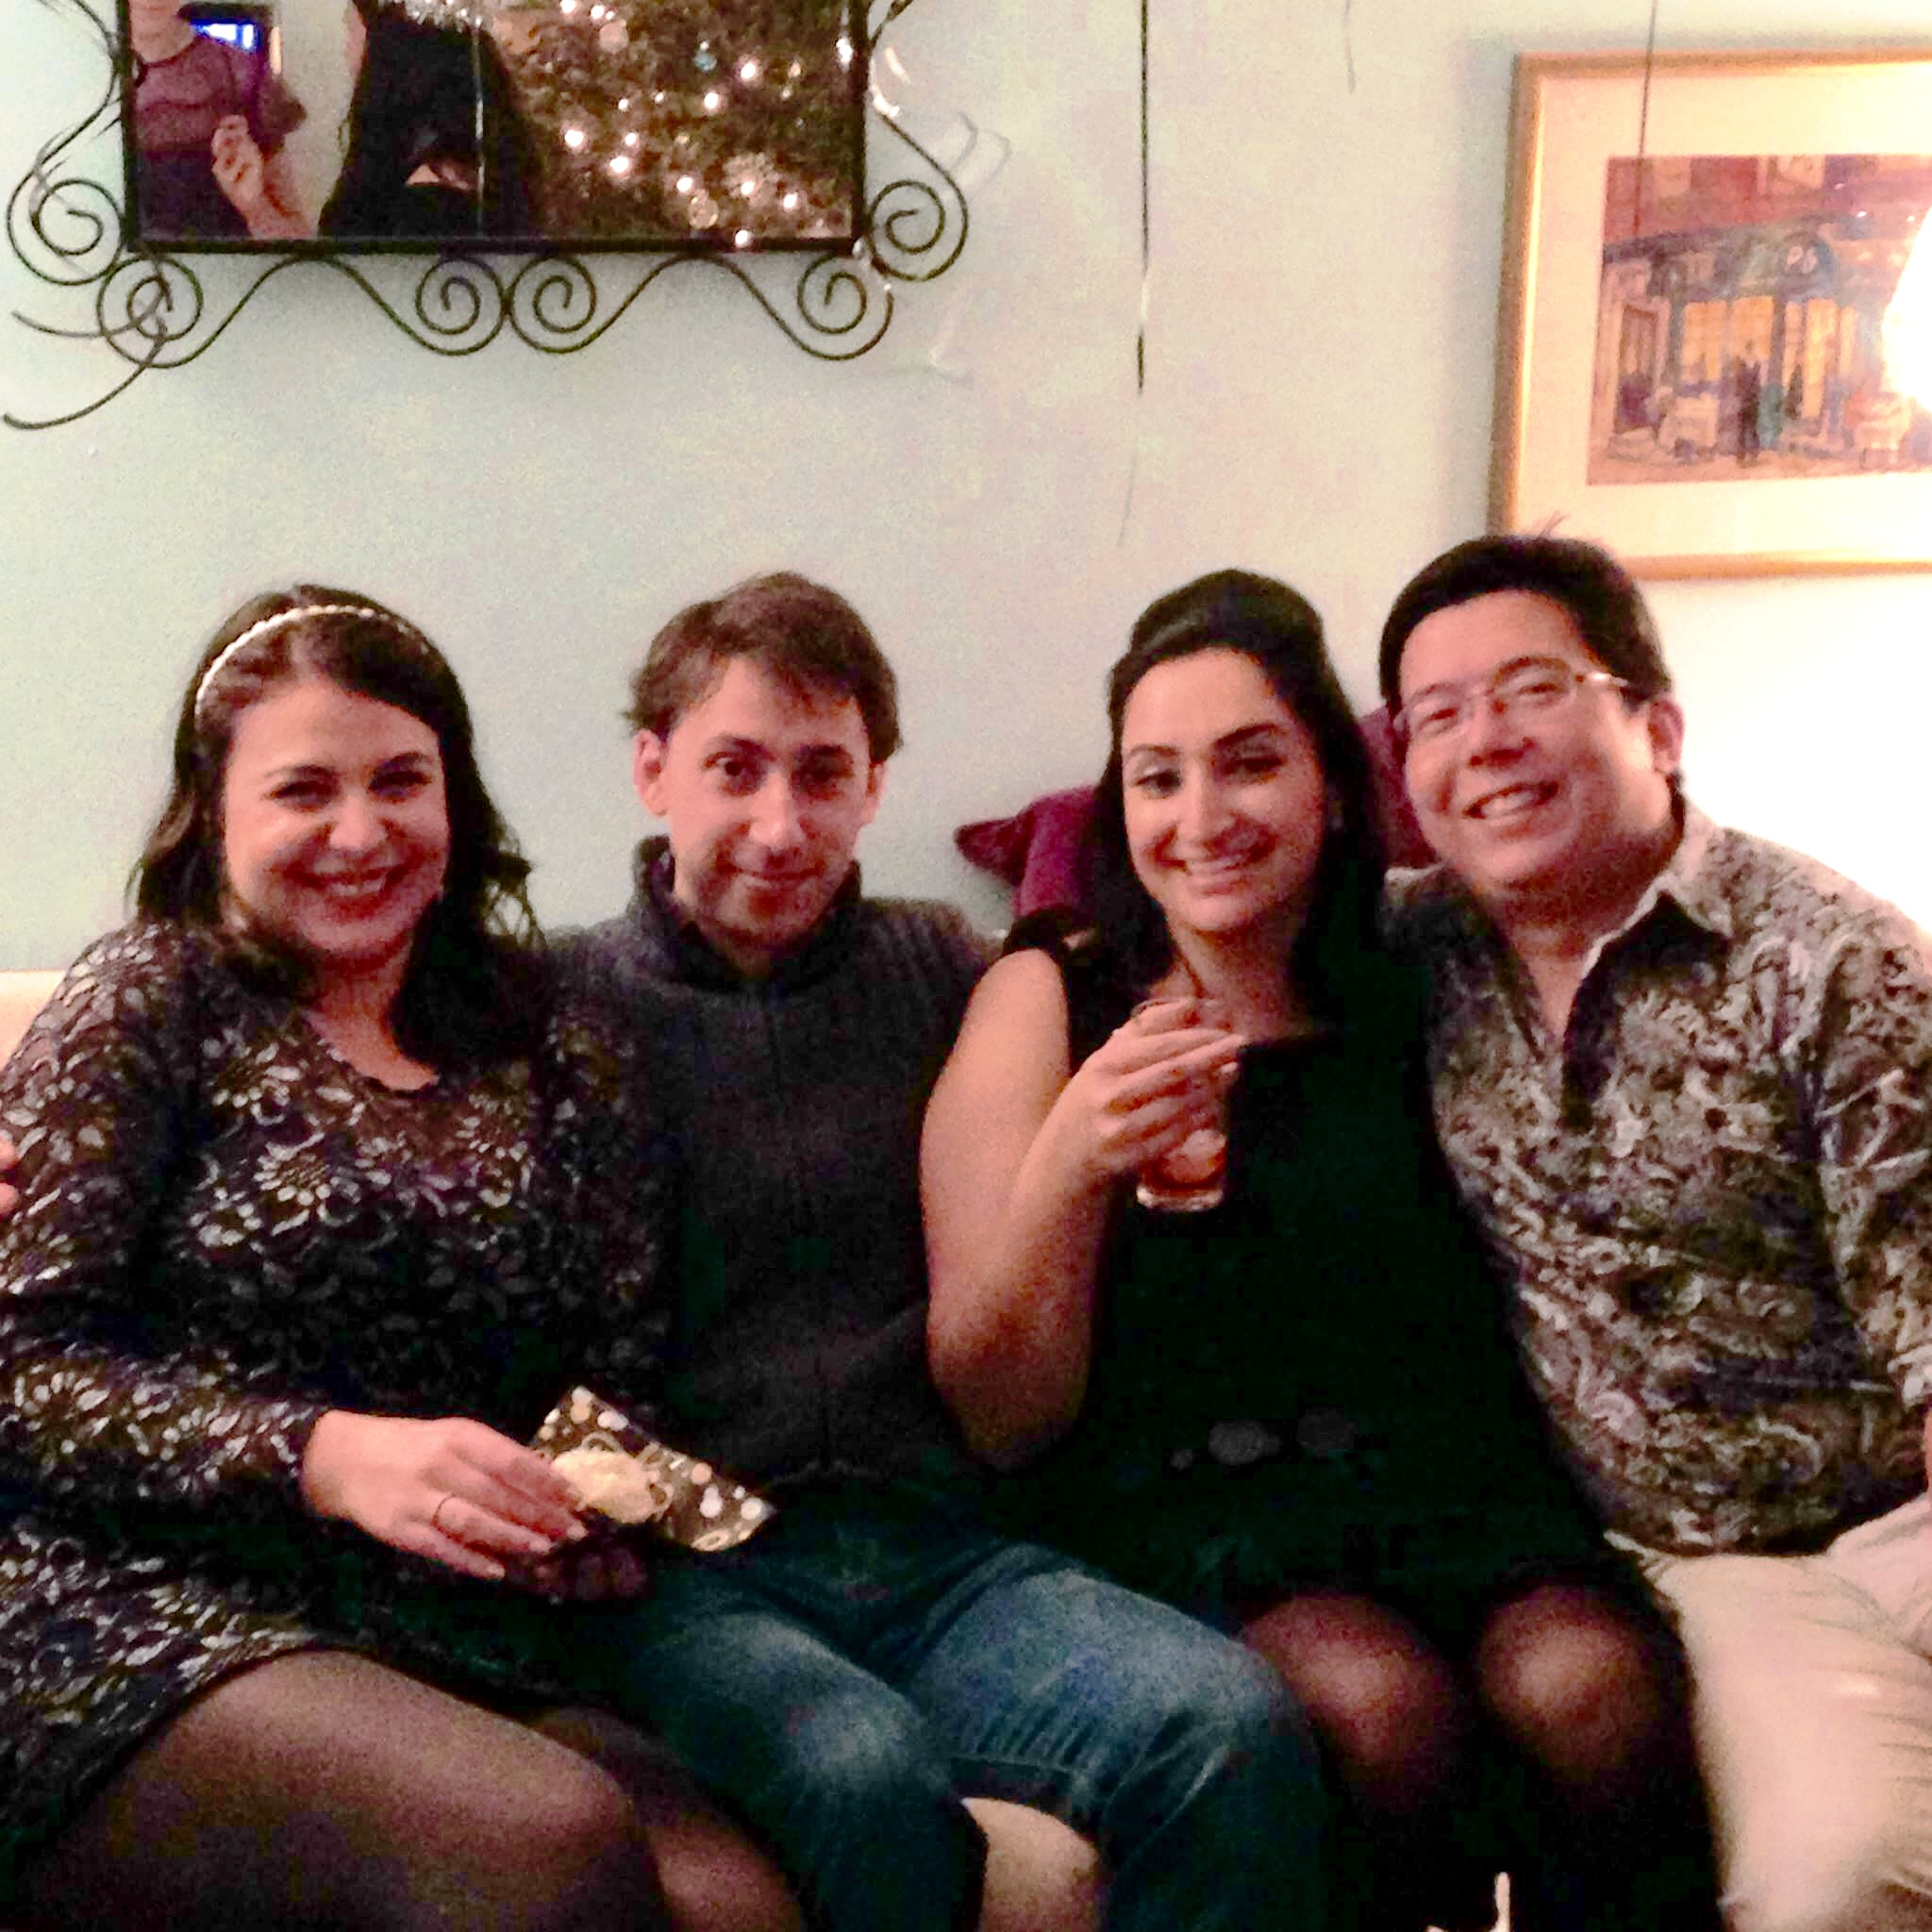 Kaitlin, Aidan, Allegra, and JP  on New Year's 2015.jpg